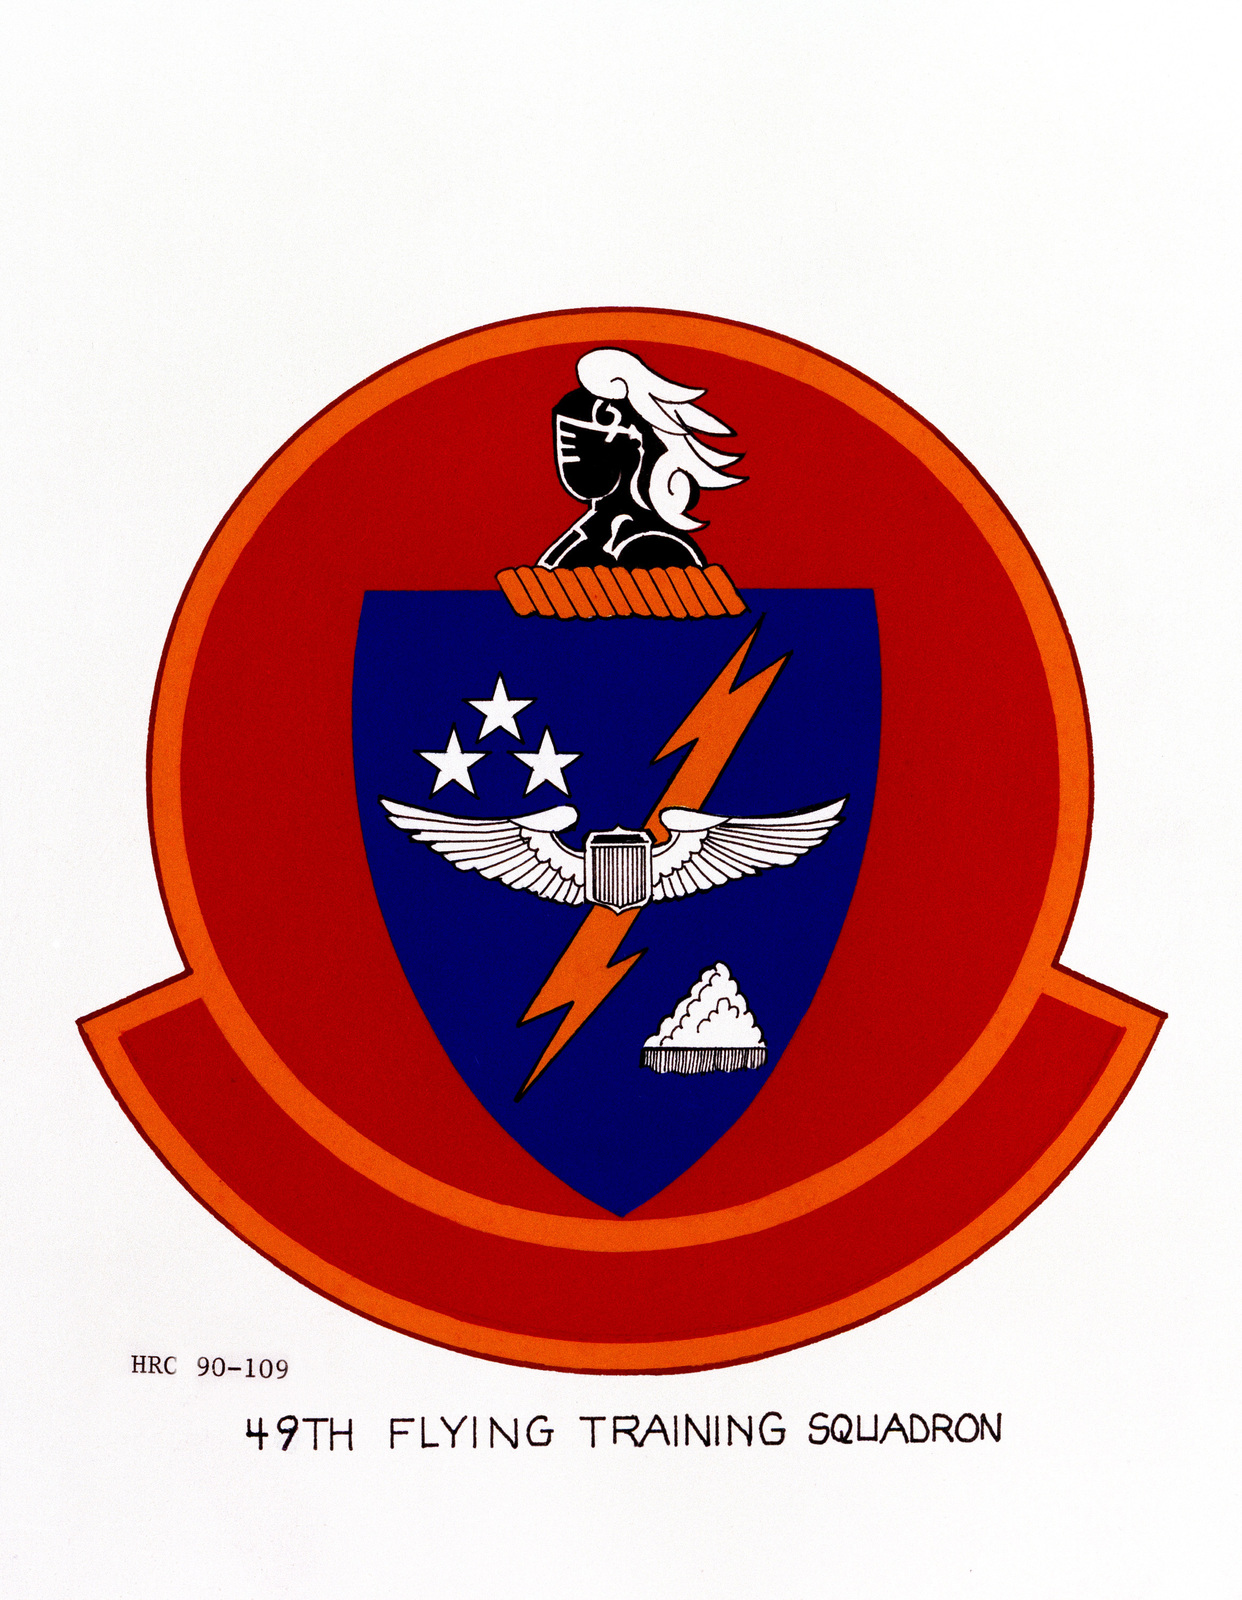 Approved insignia for: 49th Flying Training Squadron